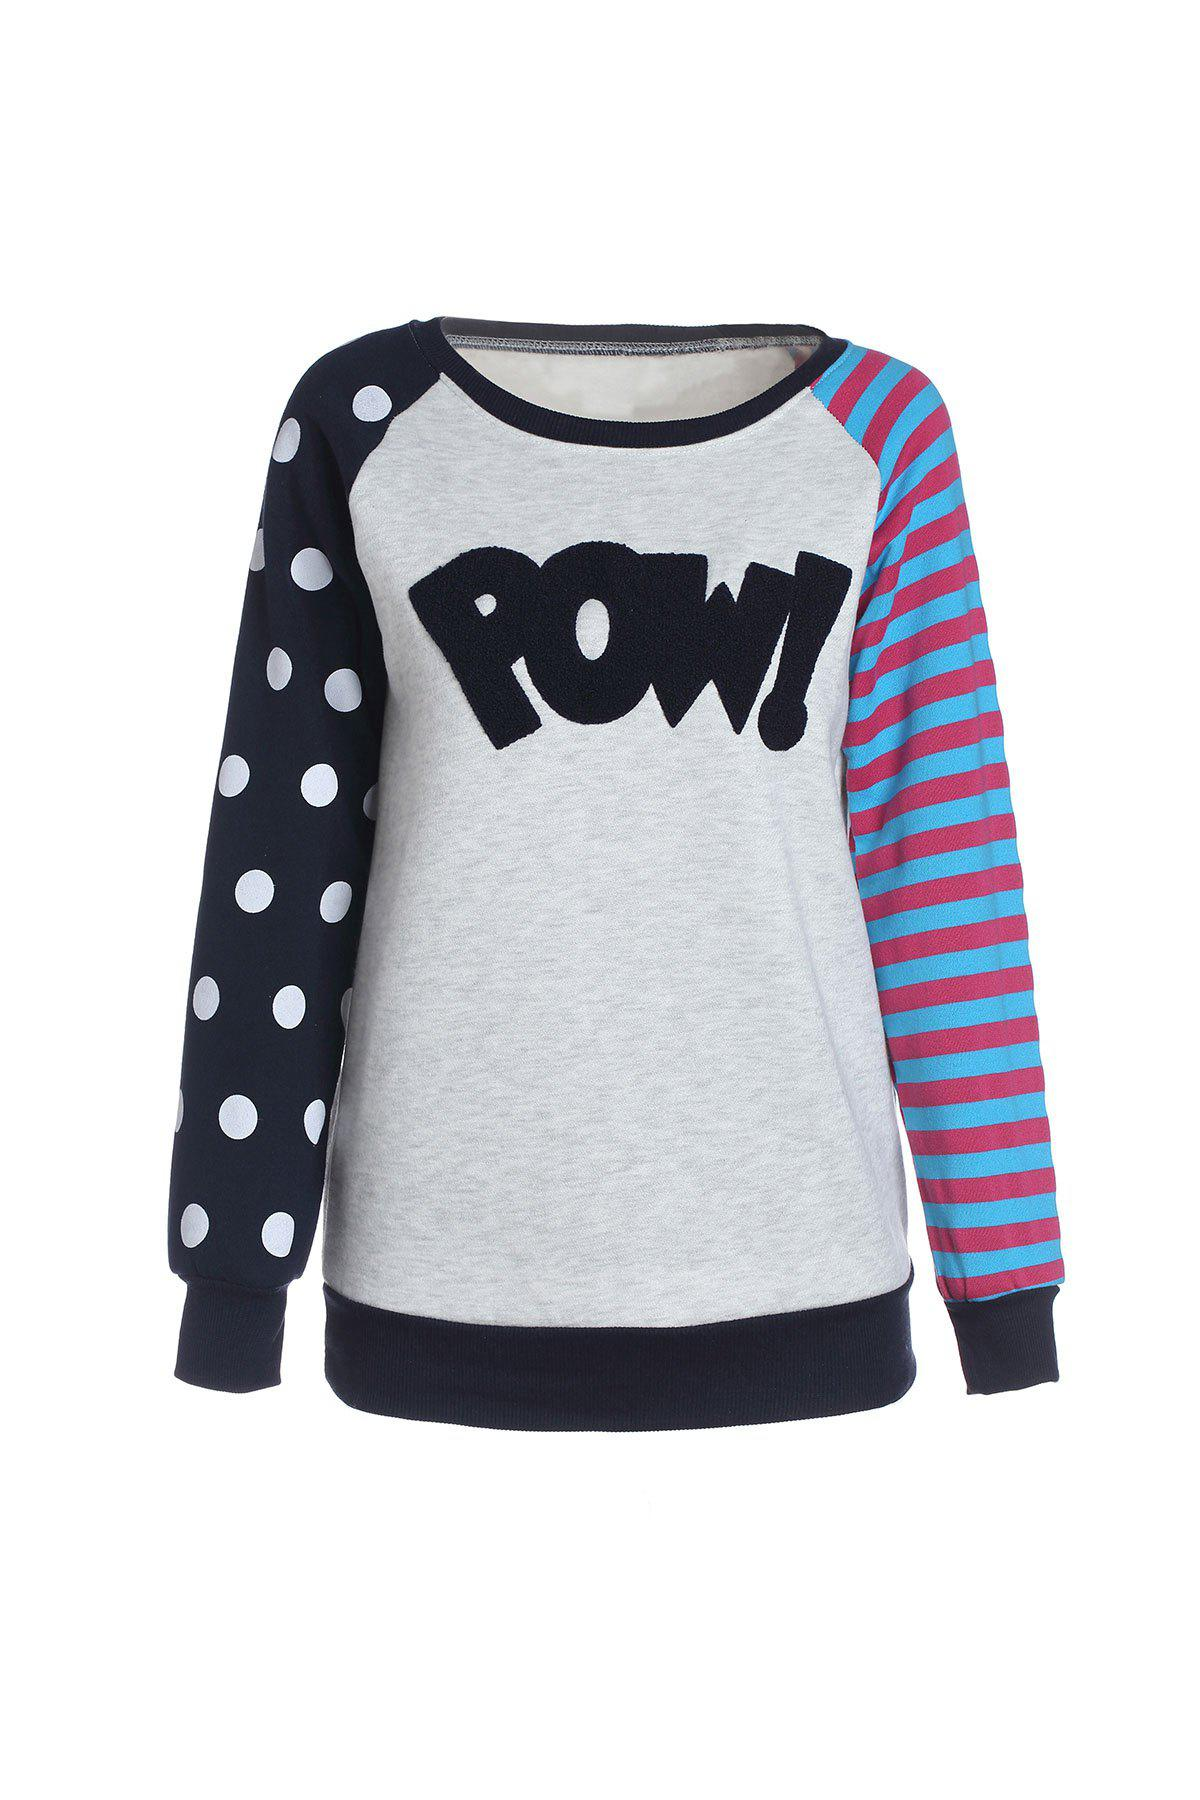 Casual Style Polka Dot Stripe Long Sleeve Women's T-Shirt - SAPPHIRE BLUE ONE SIZE